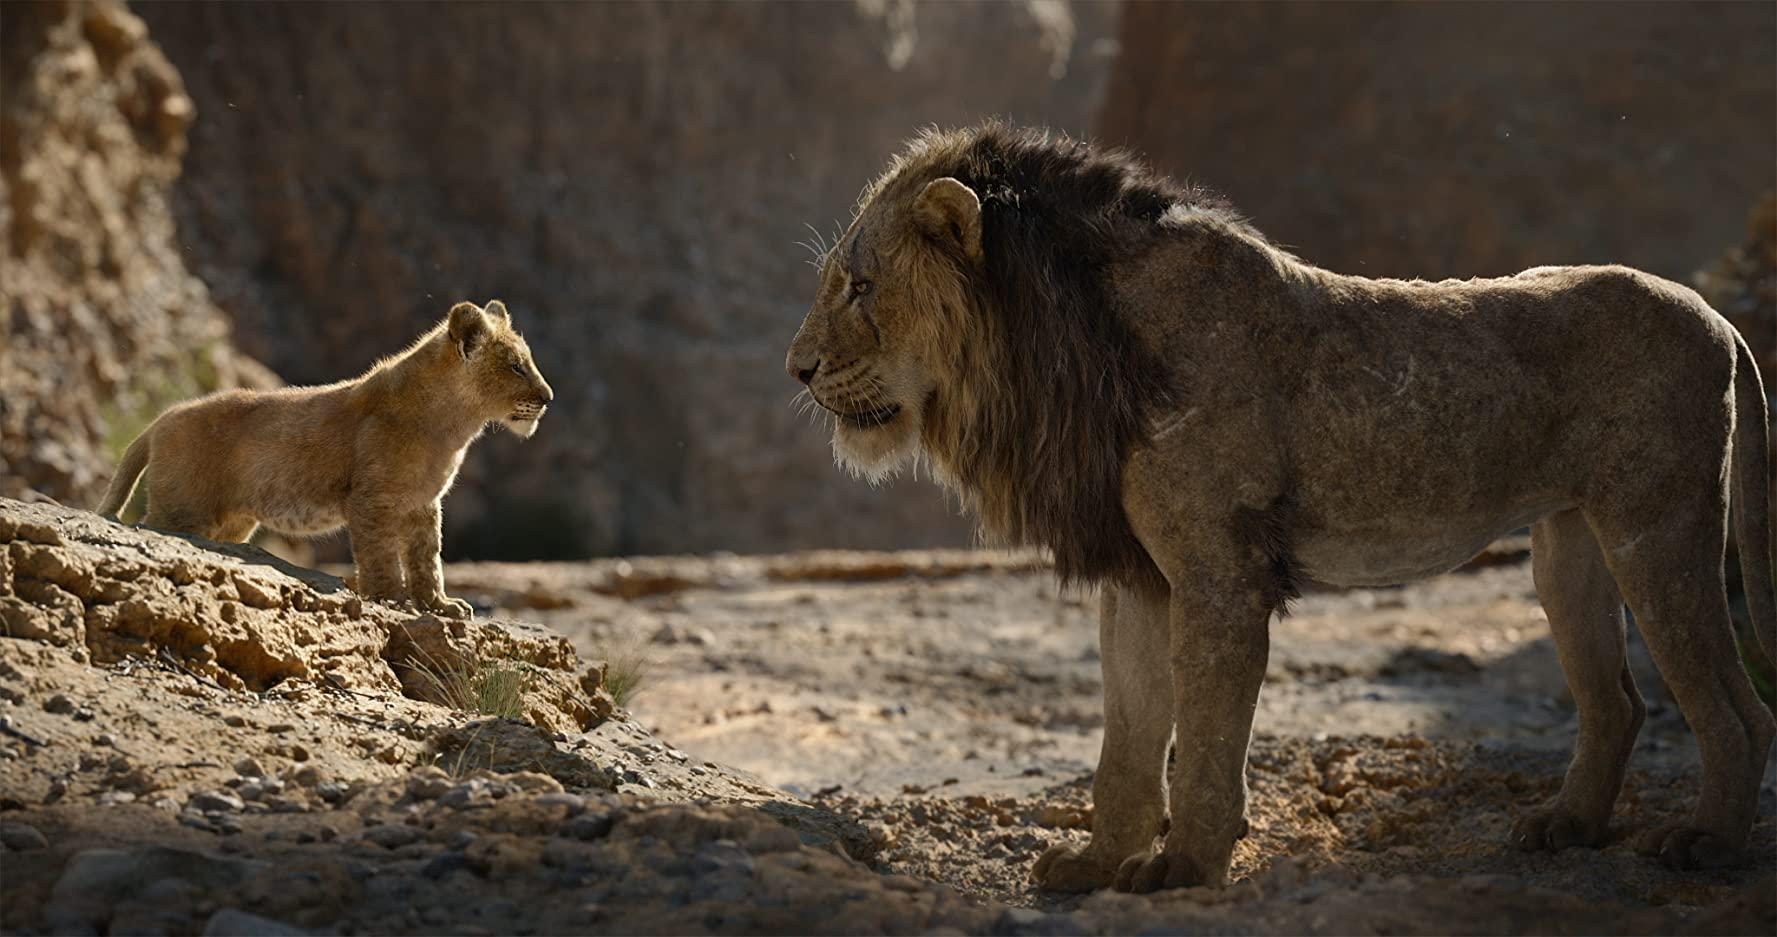 مشاهدة فيلم The Lion King (2019) مترجم HD اون لاين